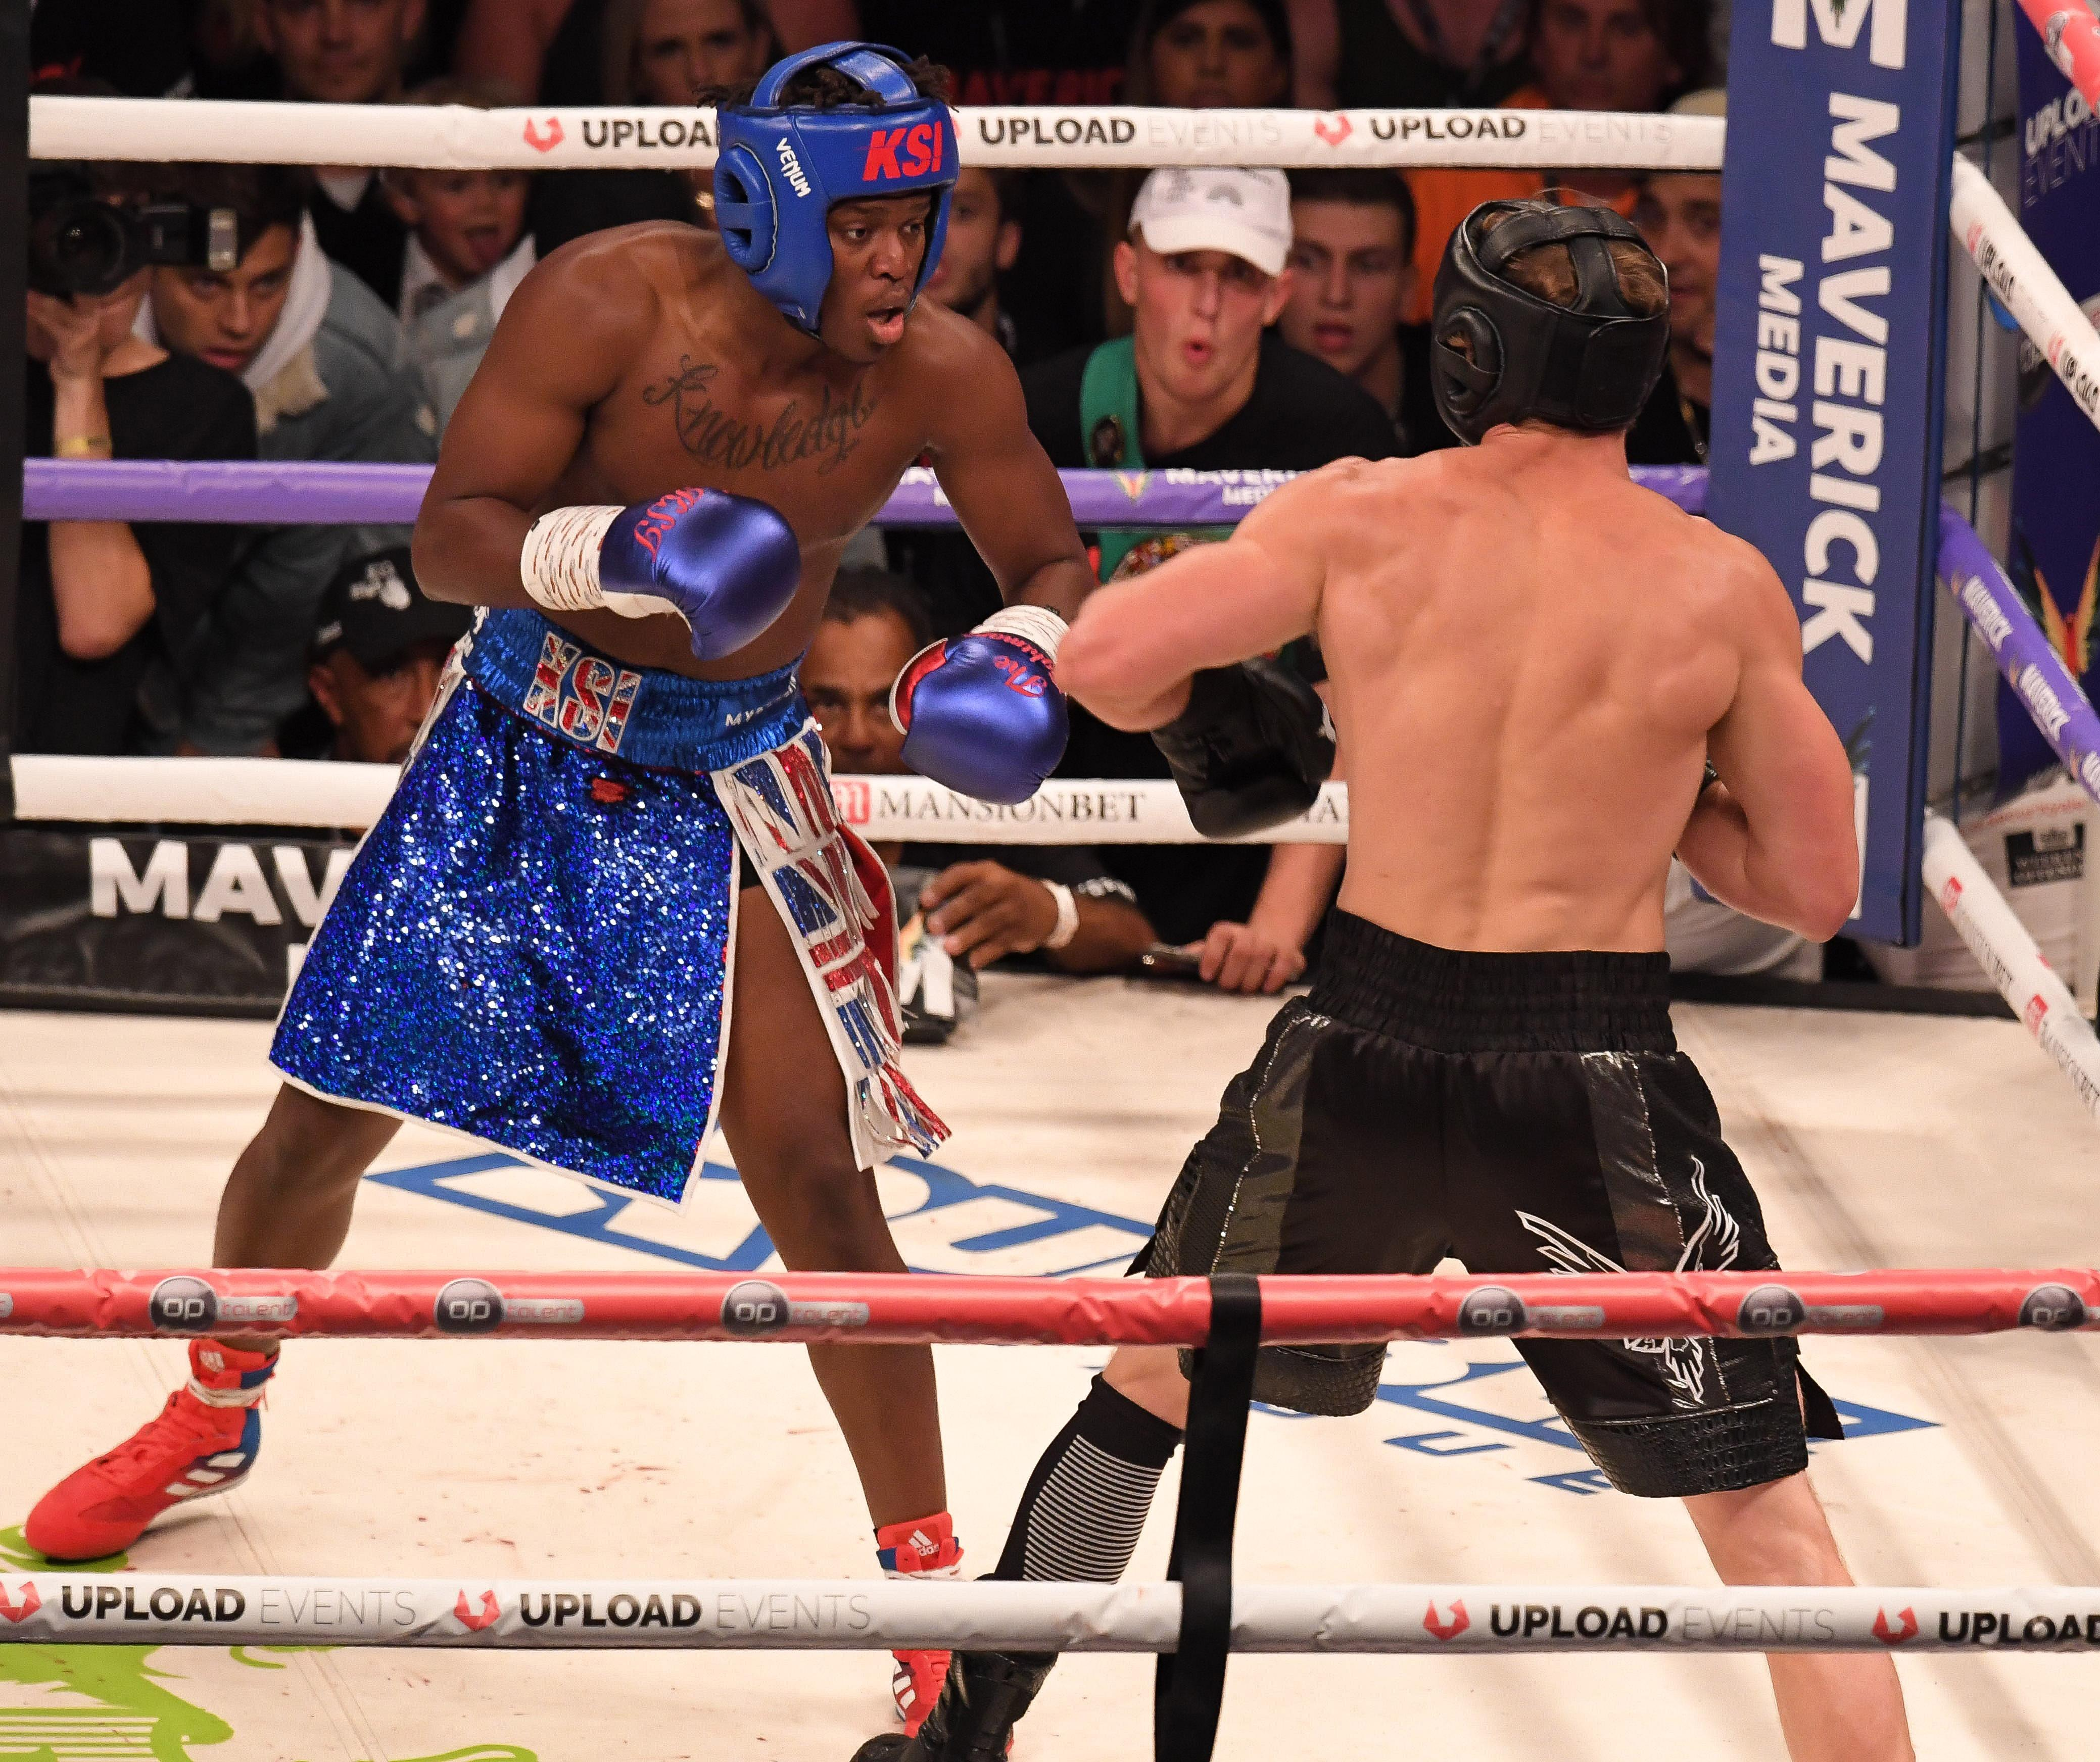 KSI added he hopes the fight will take place in New York City